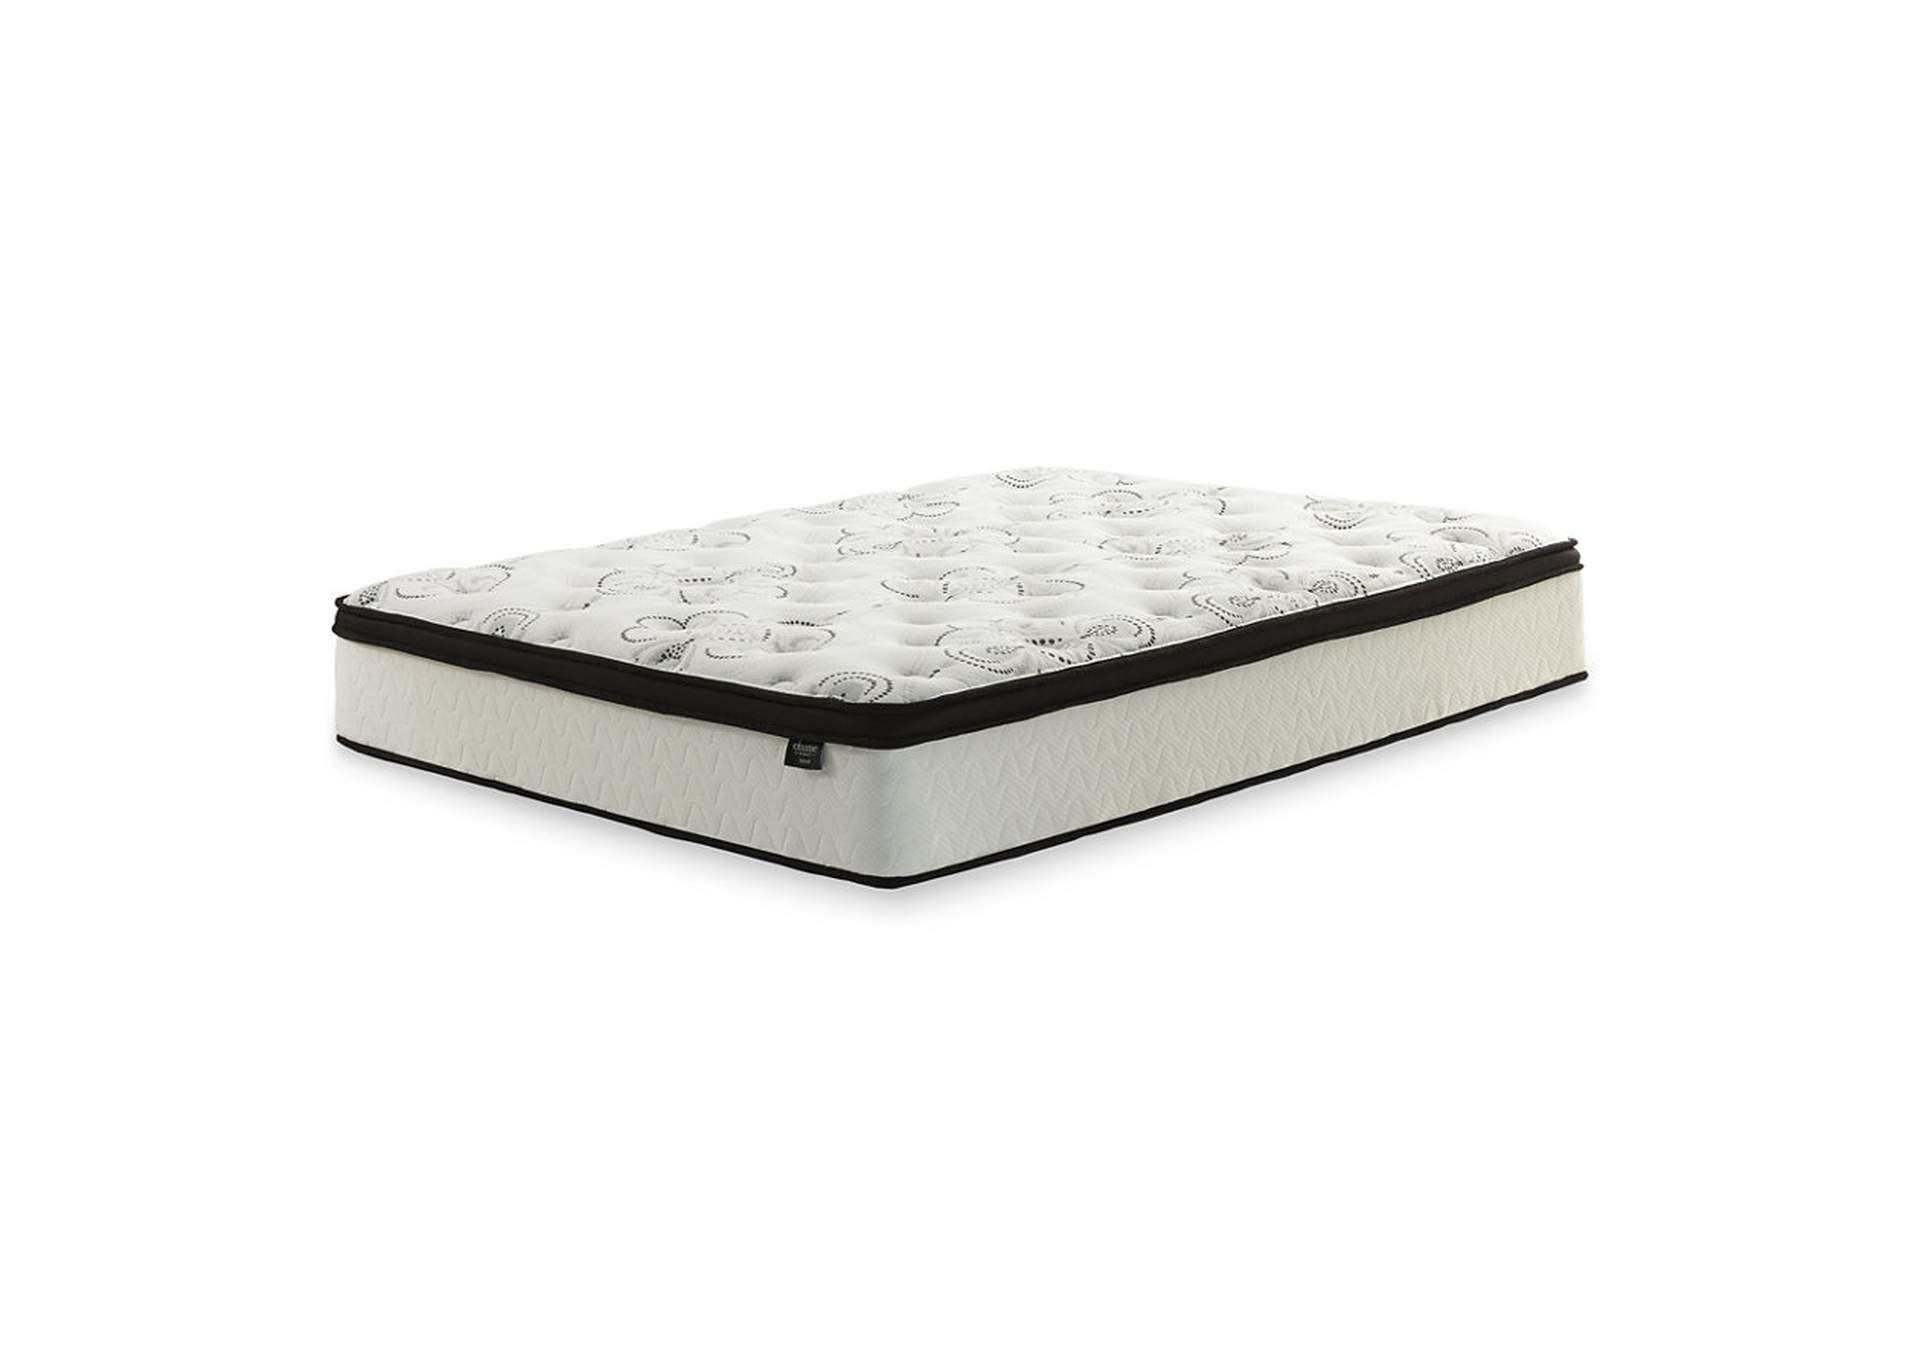 "Chime 12"" Hybrid Queen Mattress,Sierra Sleep by Ashley"